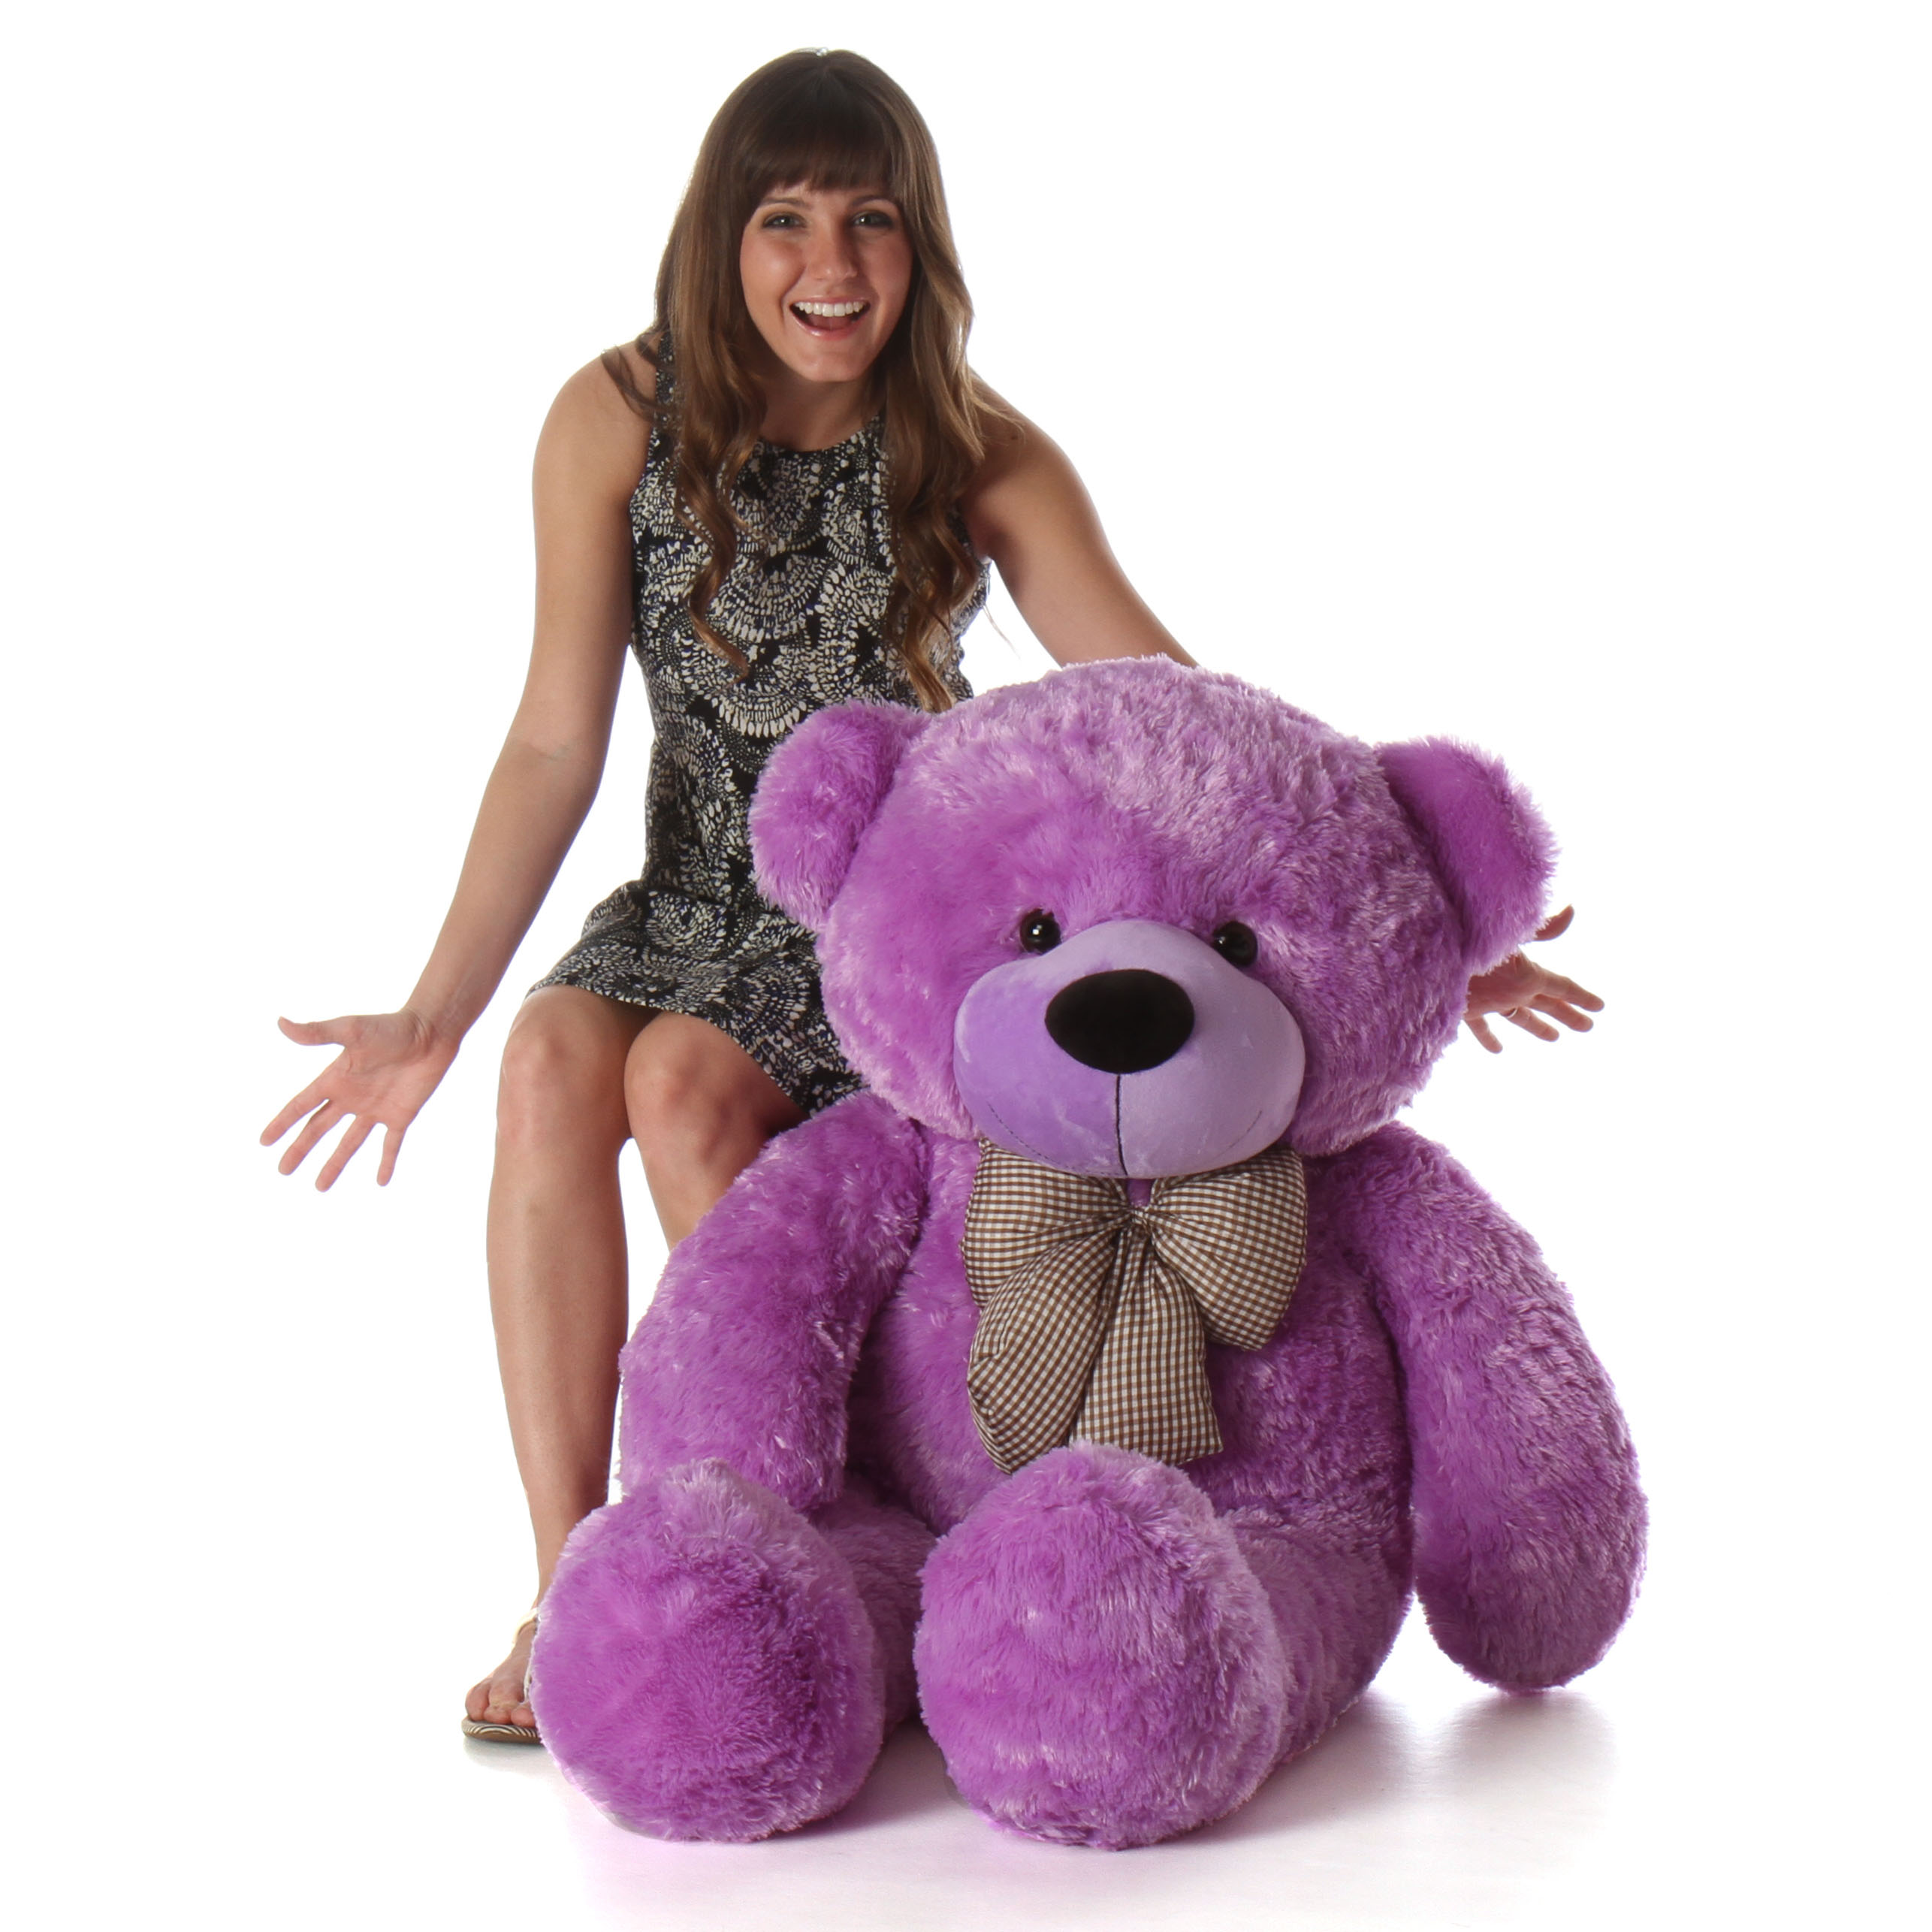 48in-huge-purple-teddy-bear-deedee-cuddles-is-so-soft-and-snuggly-with-beautiful-fur.jpg